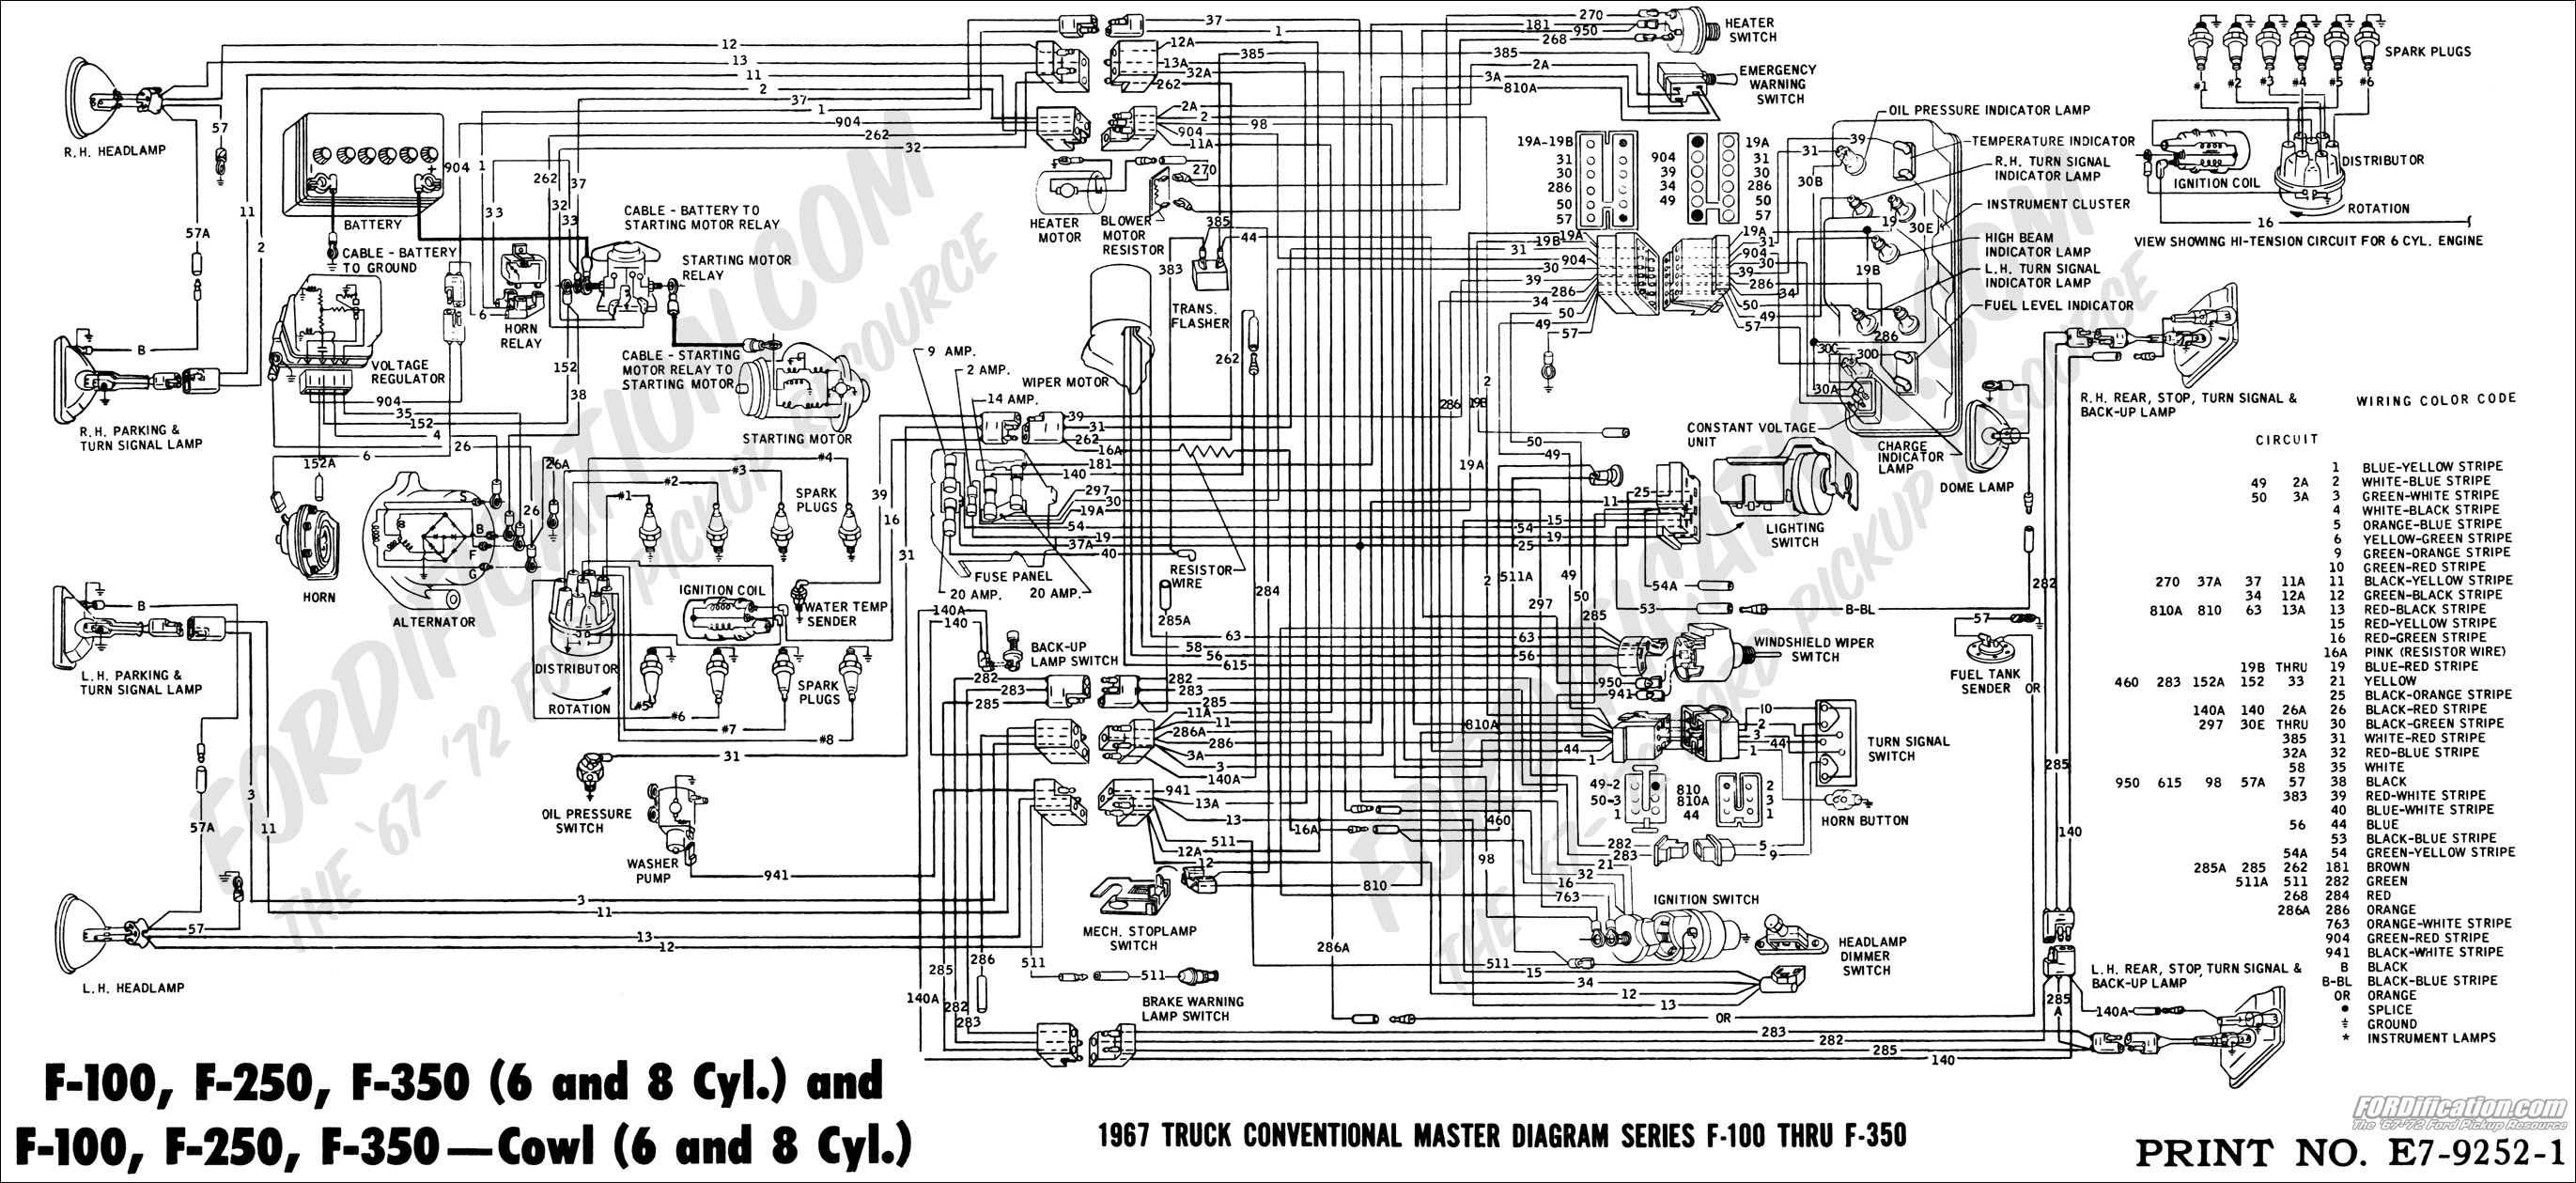 ford truck technical drawings and schematics section h wiring rh fordification com 1969 Ford F100 Wiring Diagram 1974 ford f250 wiring diagram